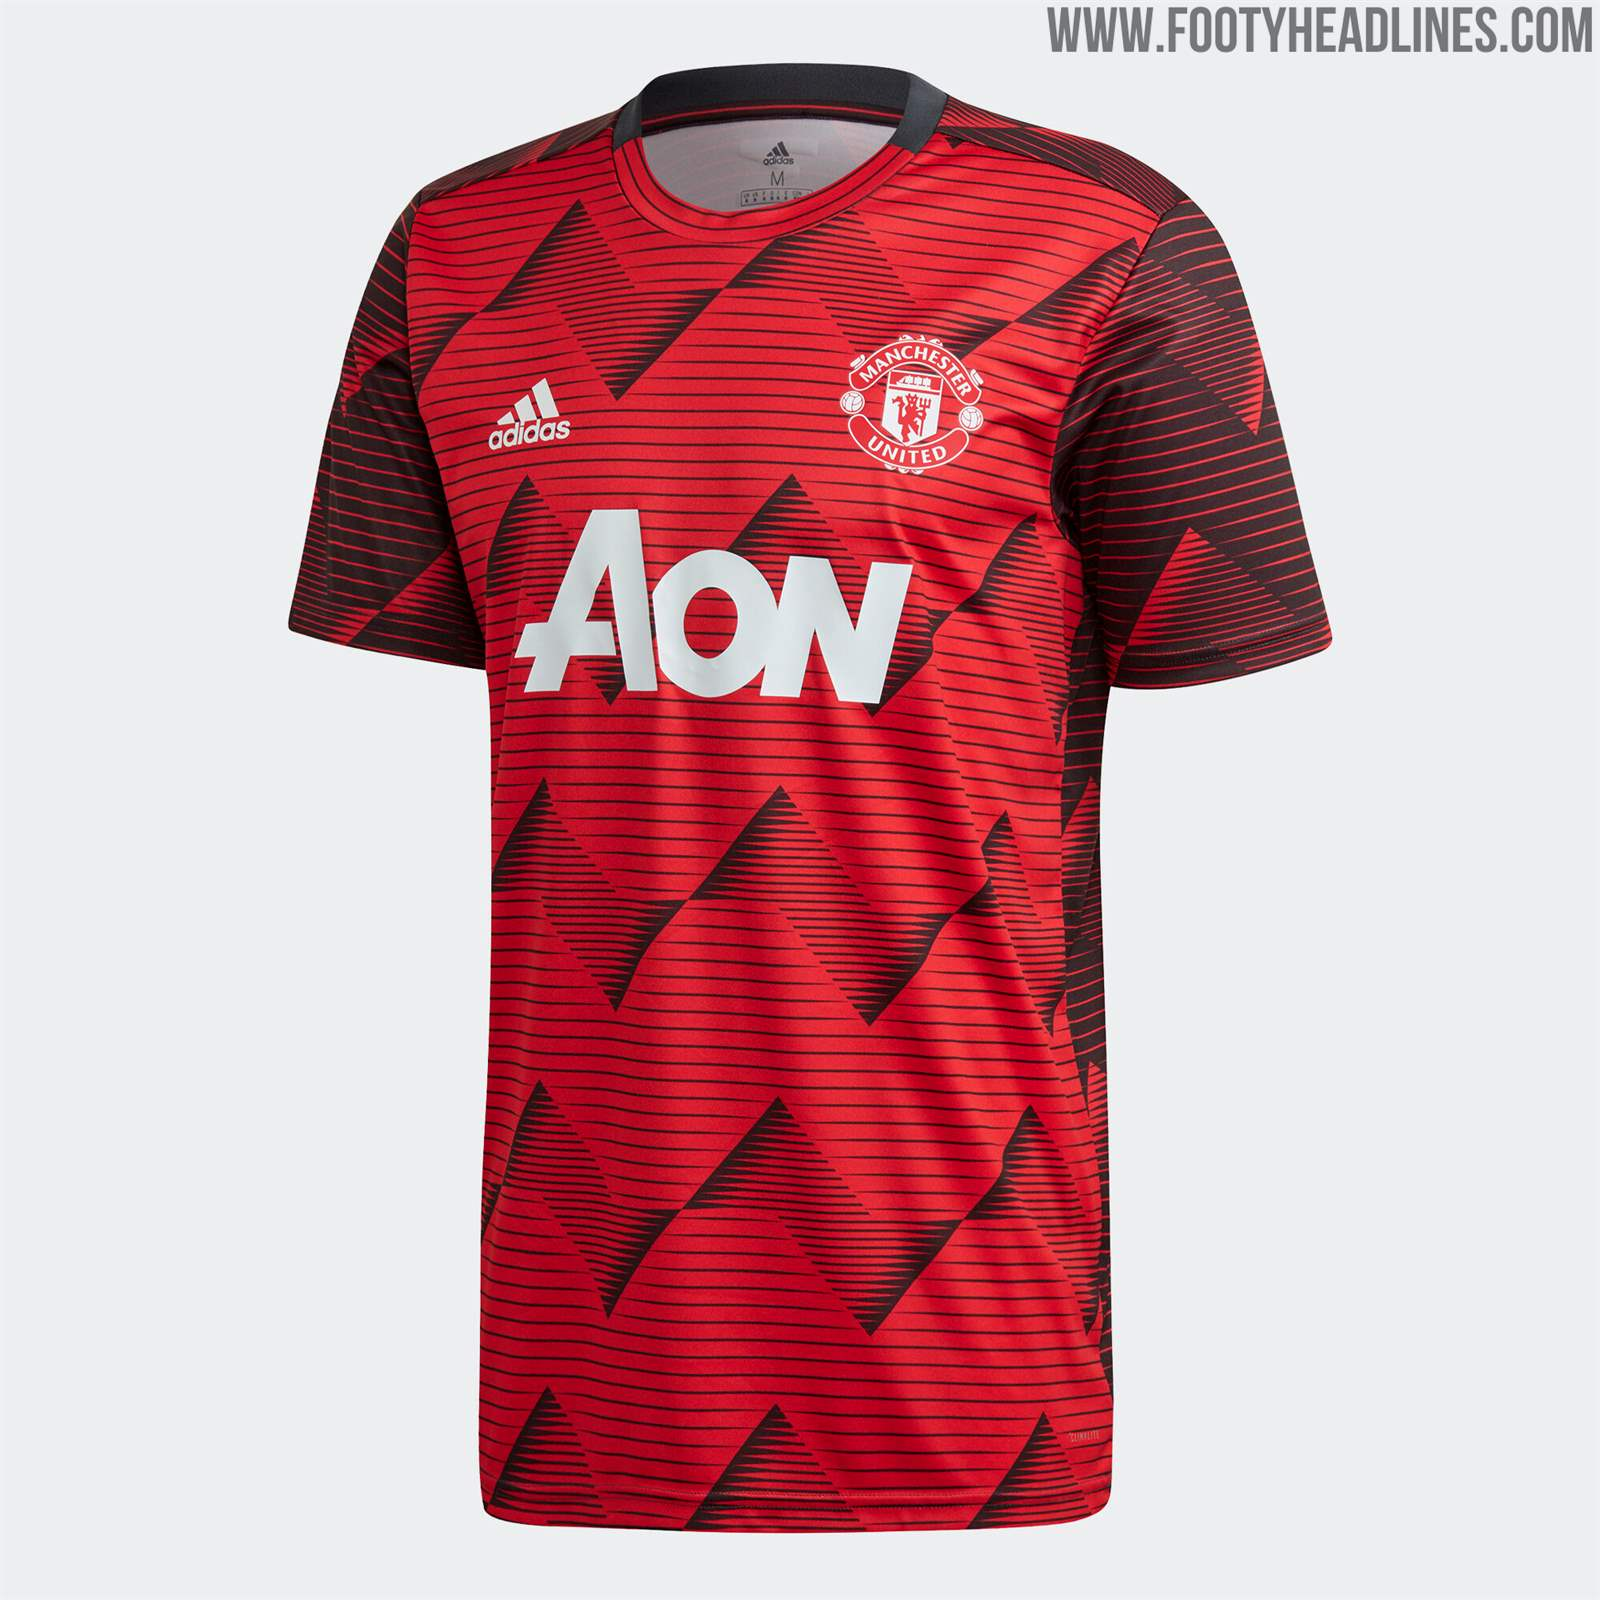 Manchester United 2020 Pre-Match Kit Released & Training ...